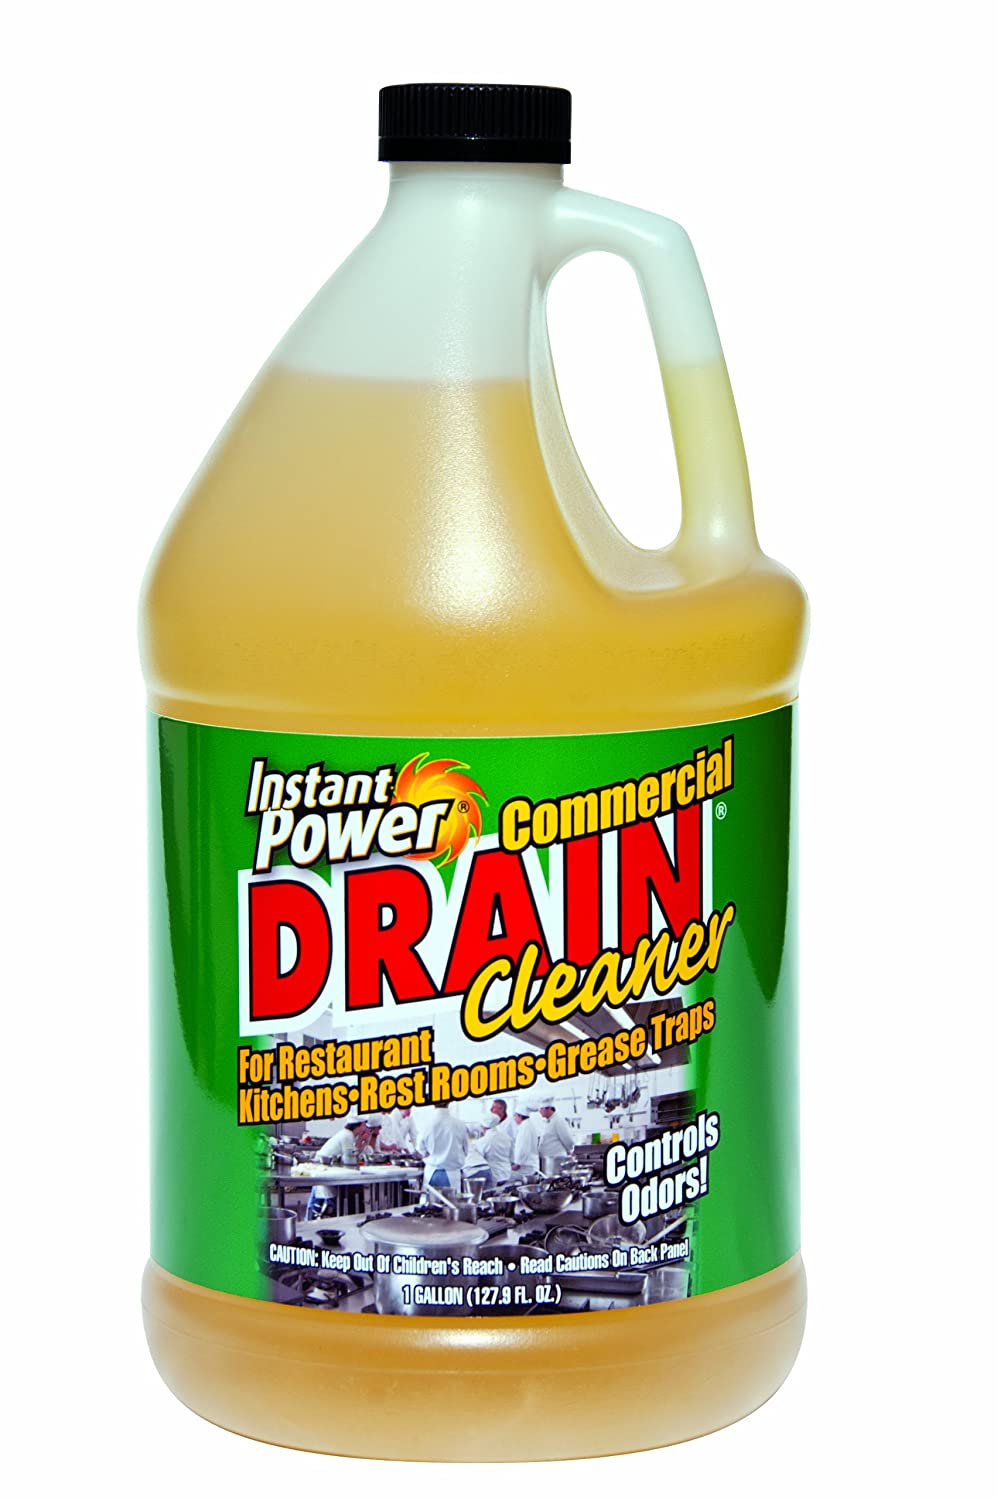 Instant Power 1501 Disposal and Drain Cleaner, Lemon Scent, 4 Liter Case Scotch Corp. 1501/4